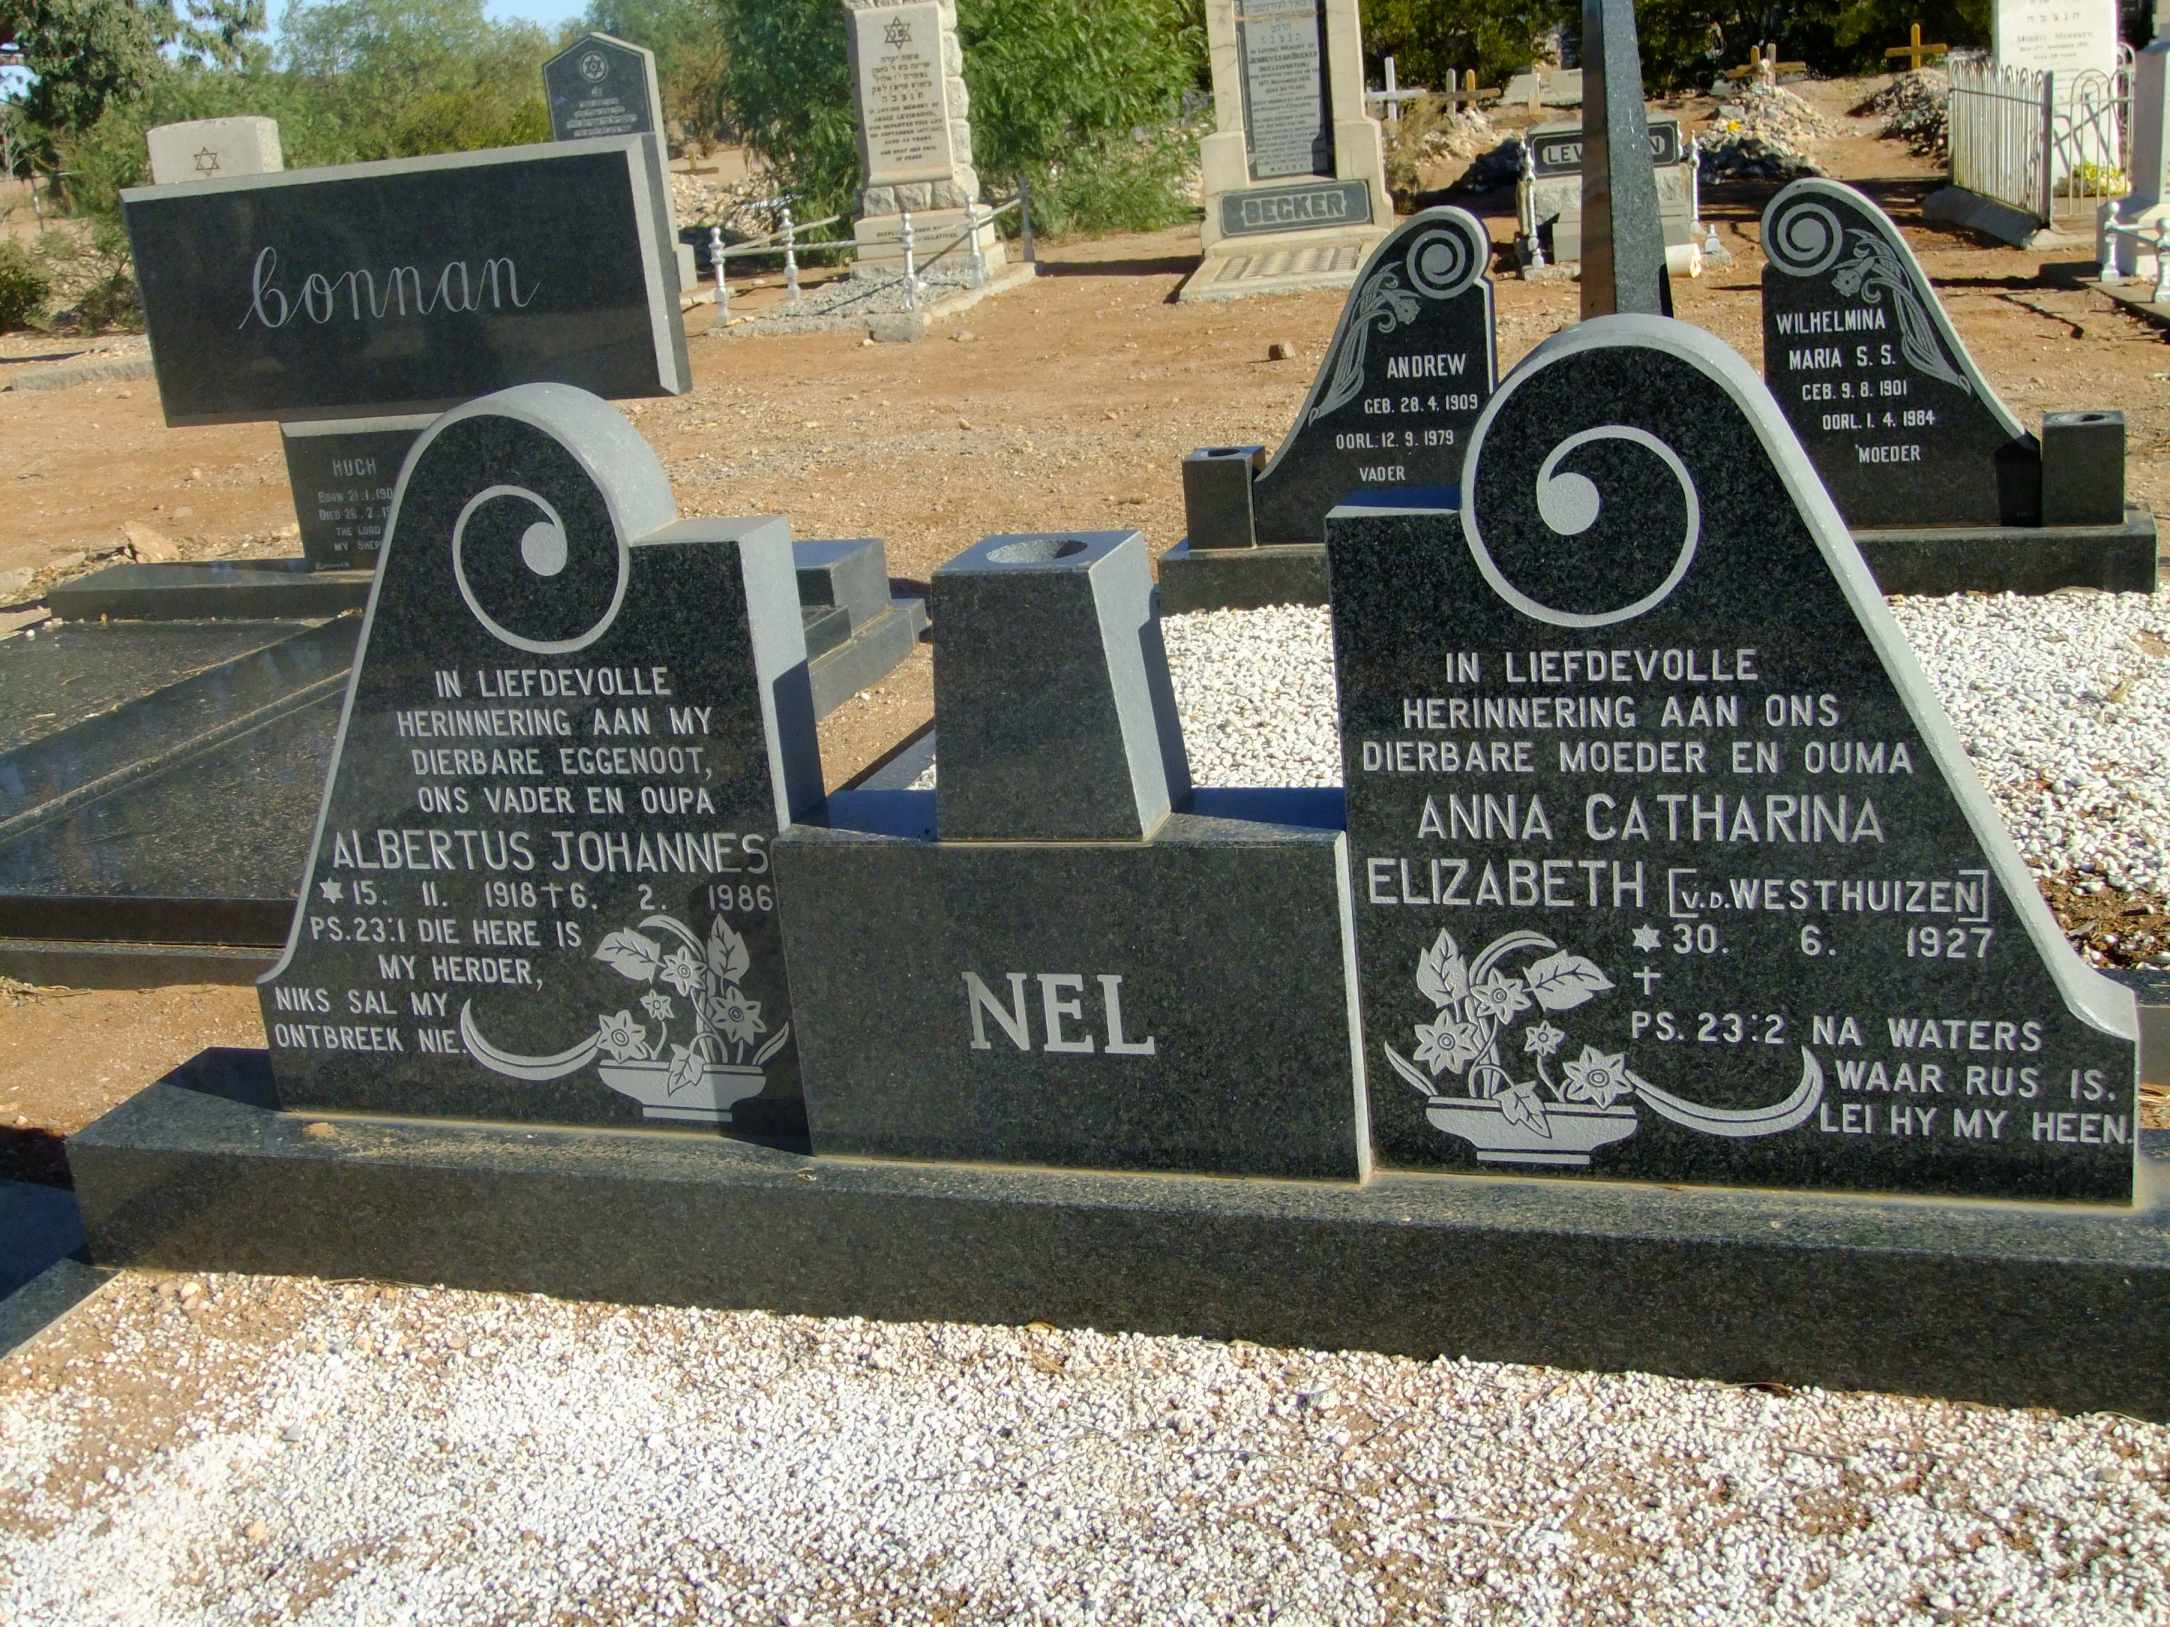 Nel, Albertus Johannes born 15 November 1918 died 06 February 1986 and Anna Catharina Elizabeth nee Van der Westhuizen born 30 June 1927